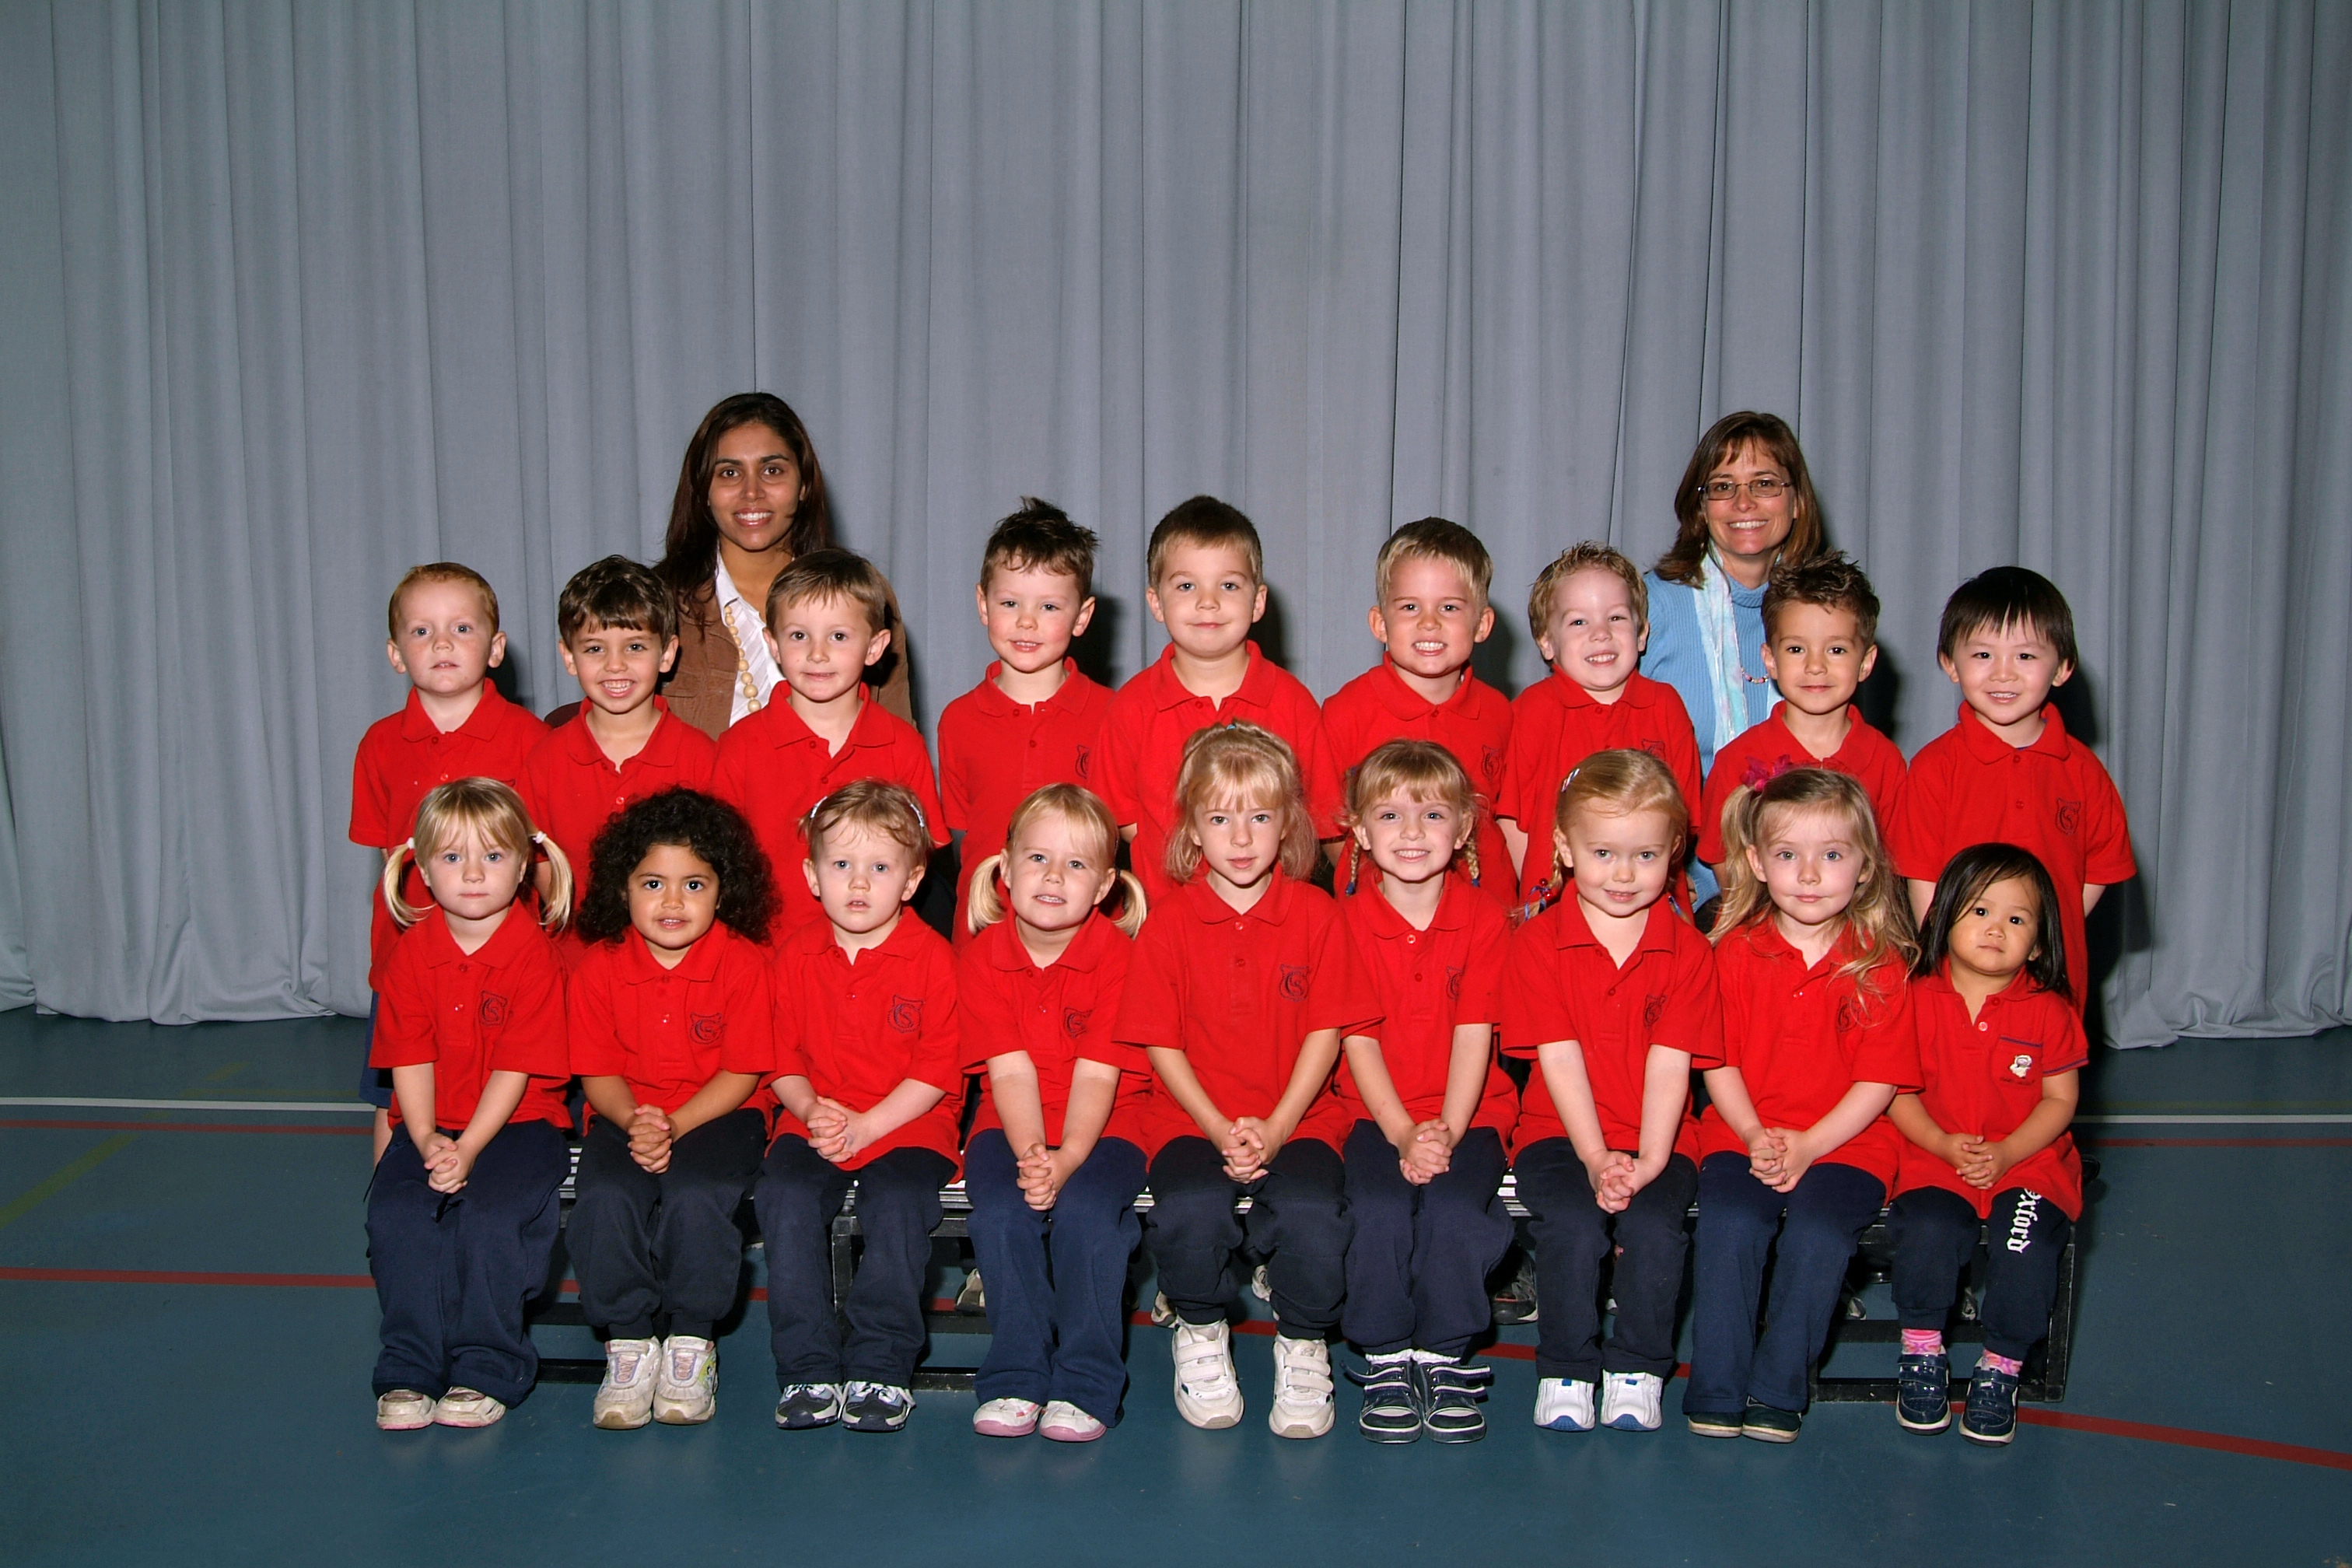 Covenant Christian School first preschool class